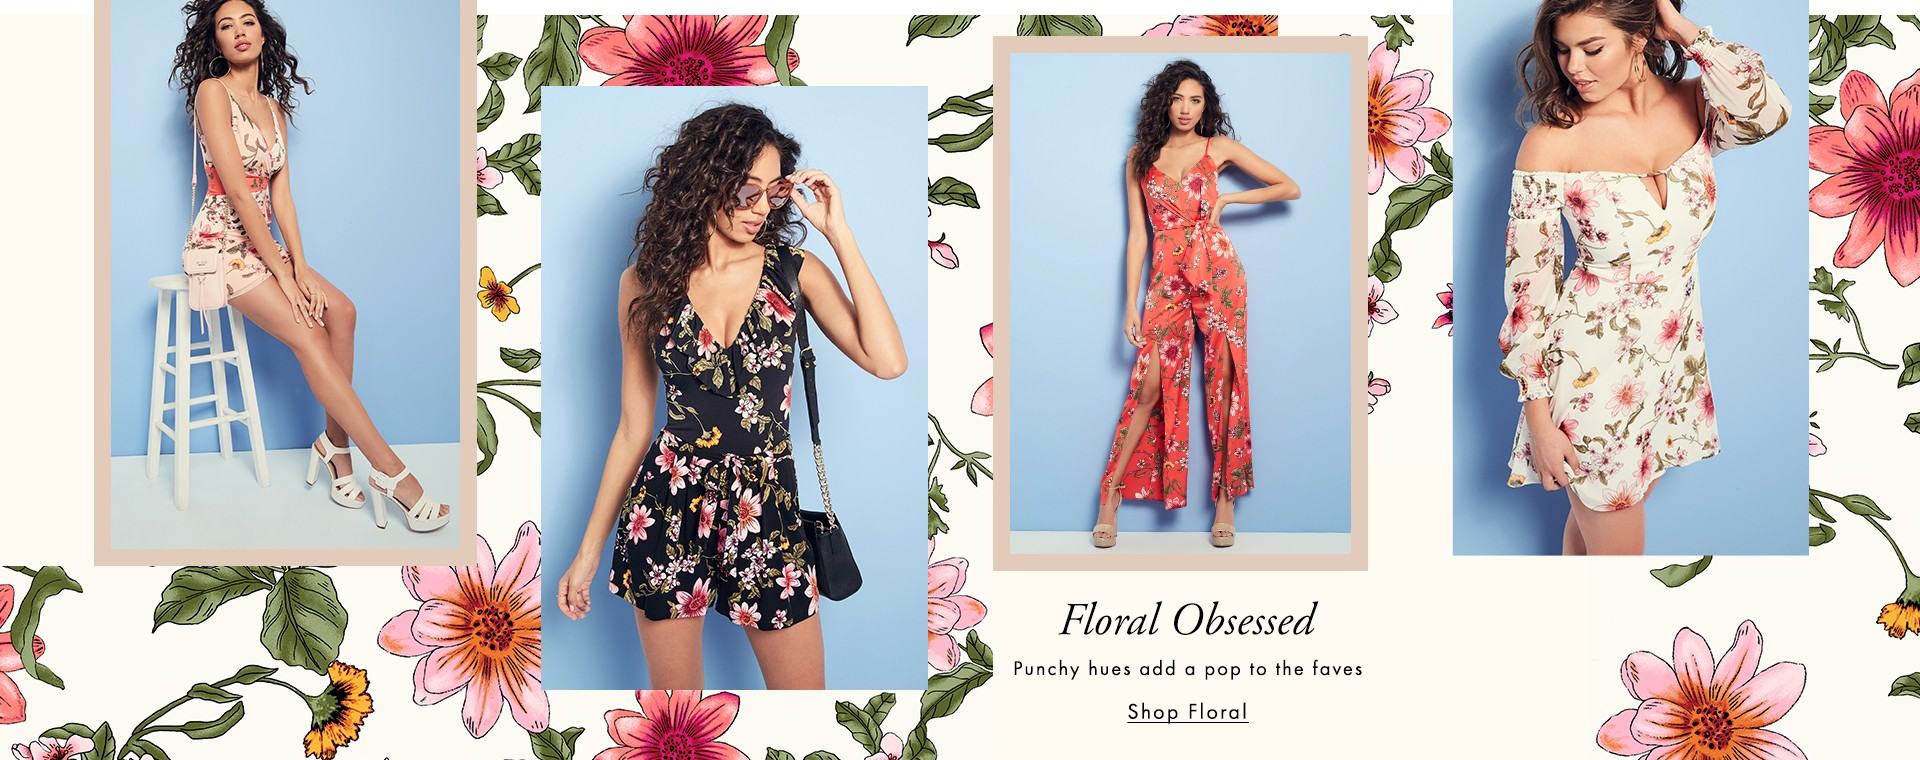 Floral Obsessed